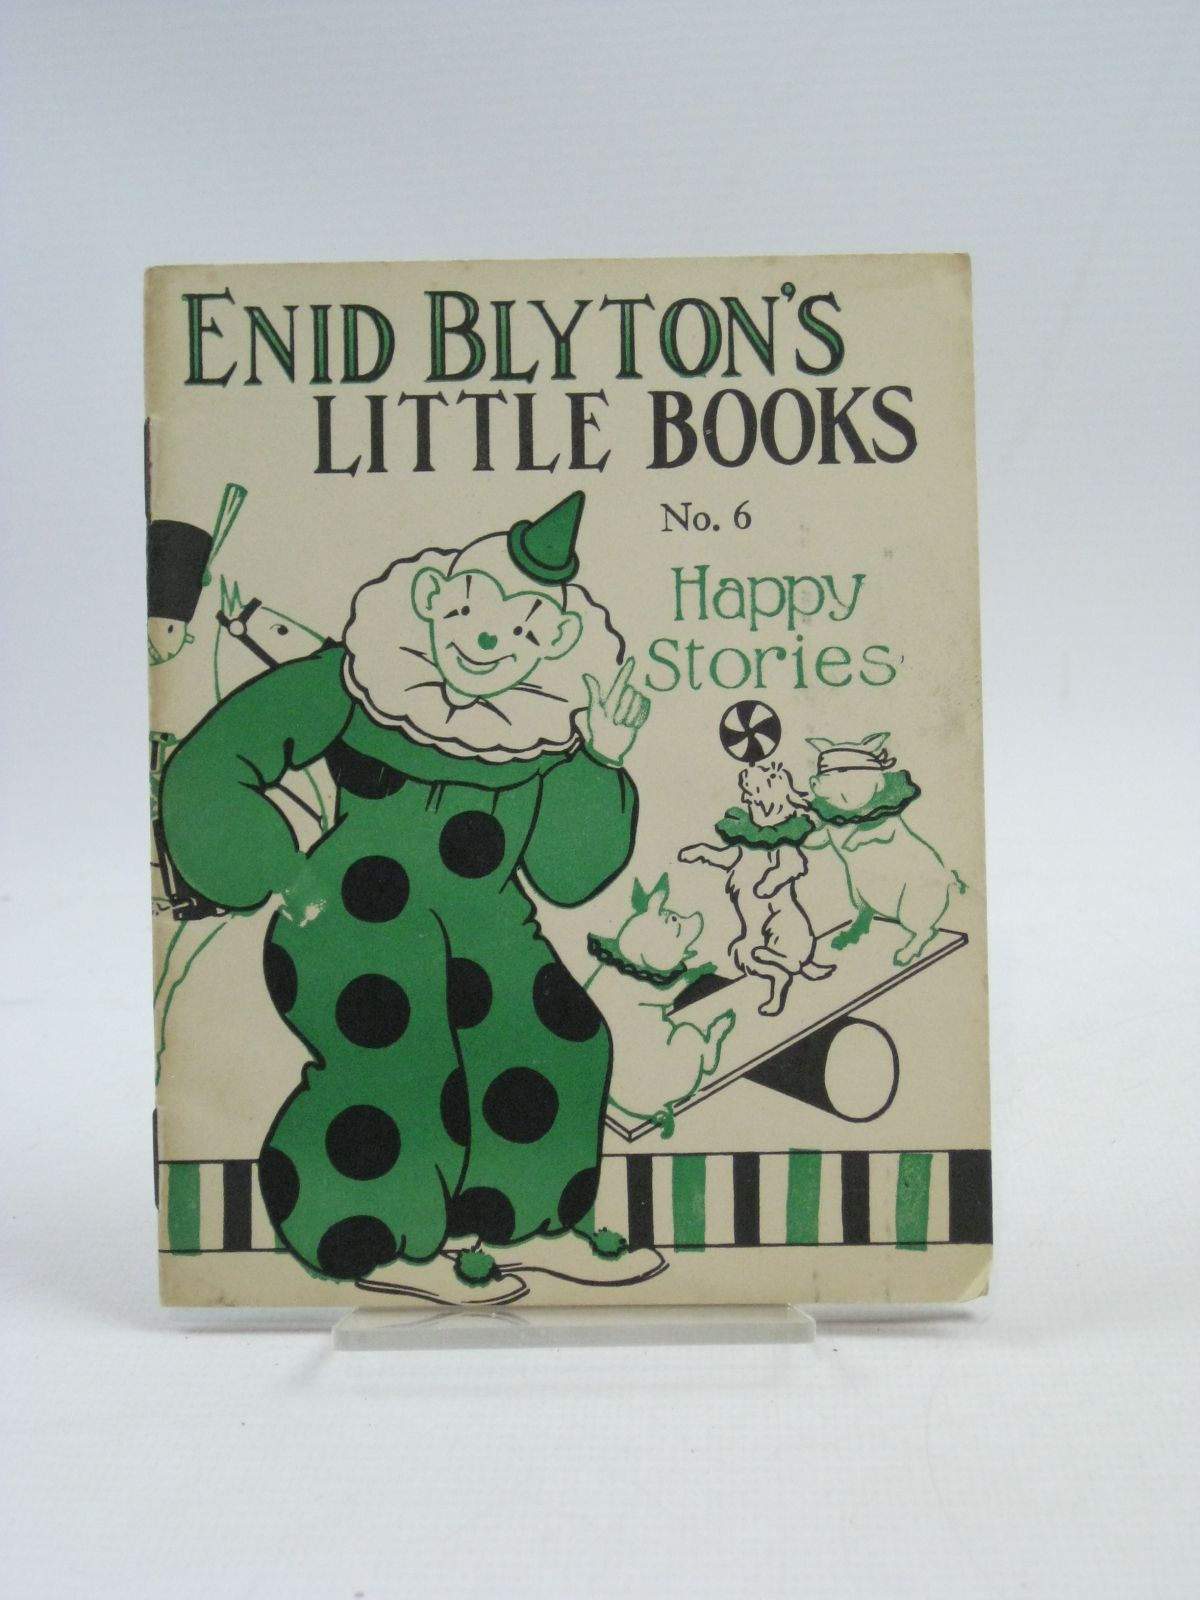 Cover of ENID BLYTON'S LITTLE BOOKS NO. 6 - HAPPY STORIES by Enid Blyton